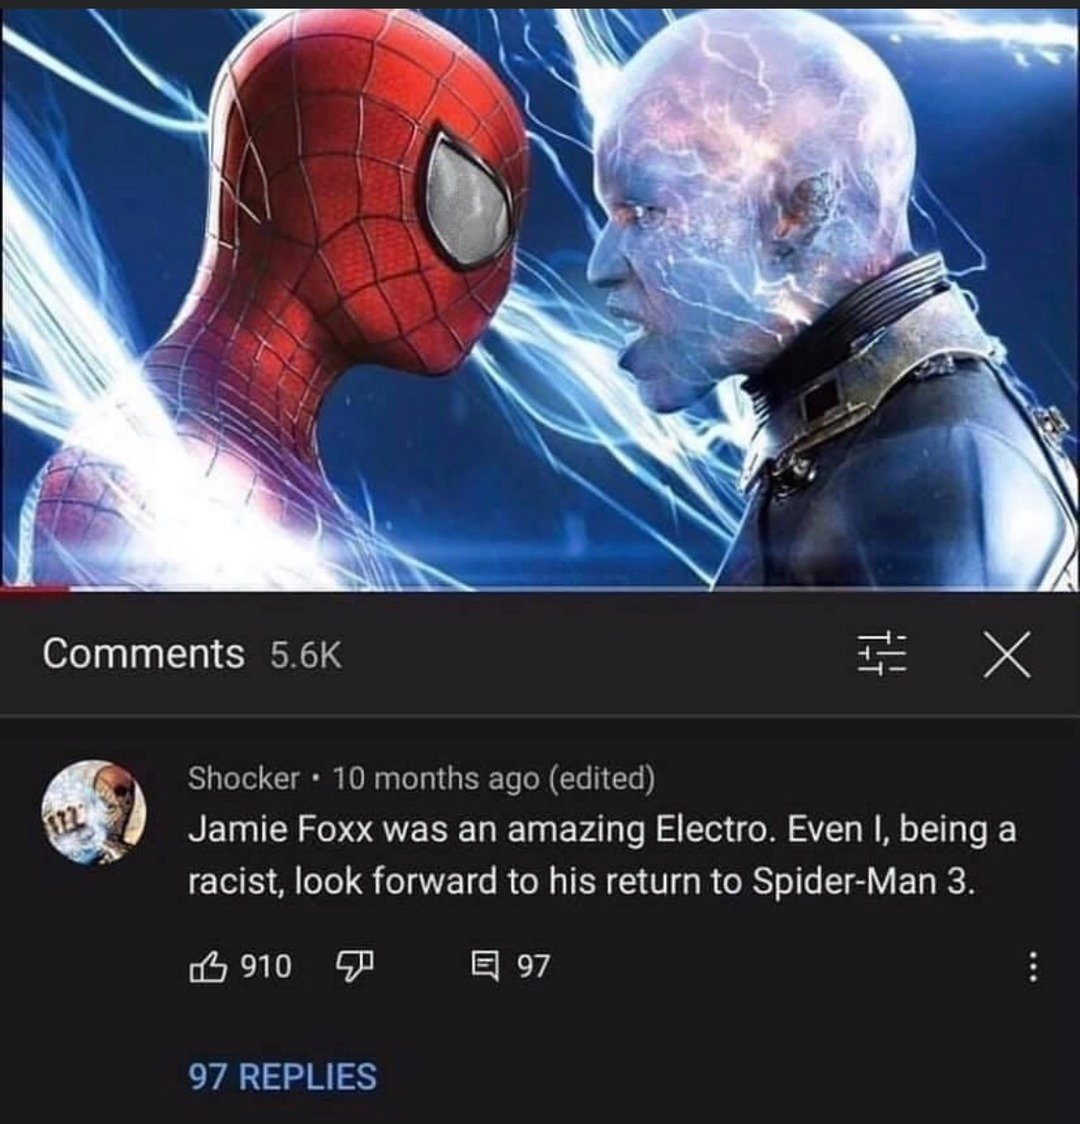 average memedroider is excited to see Jamie foxx in the new Spider-Man movie